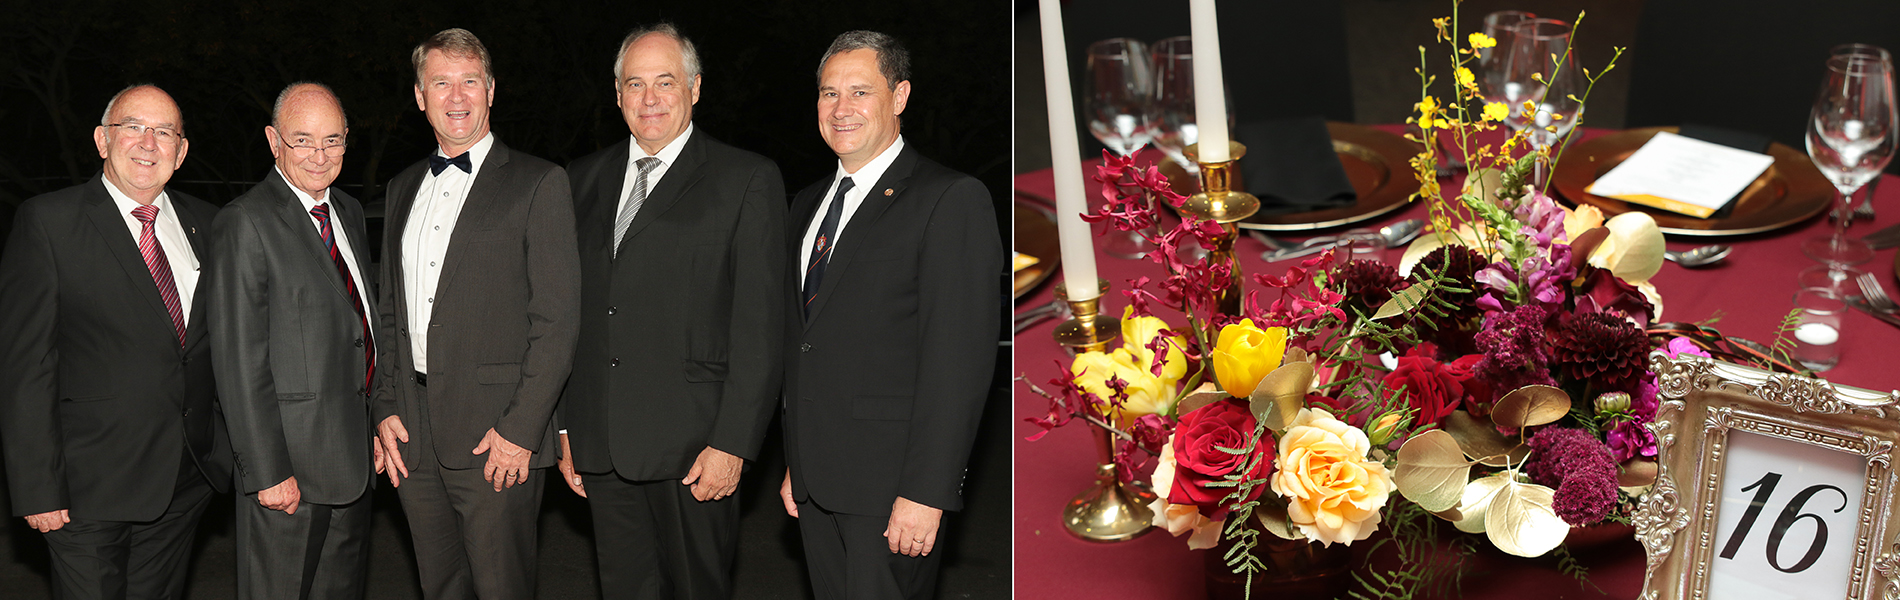 Faculty of Engineering celebrates 75 years with festive Gala Dinner